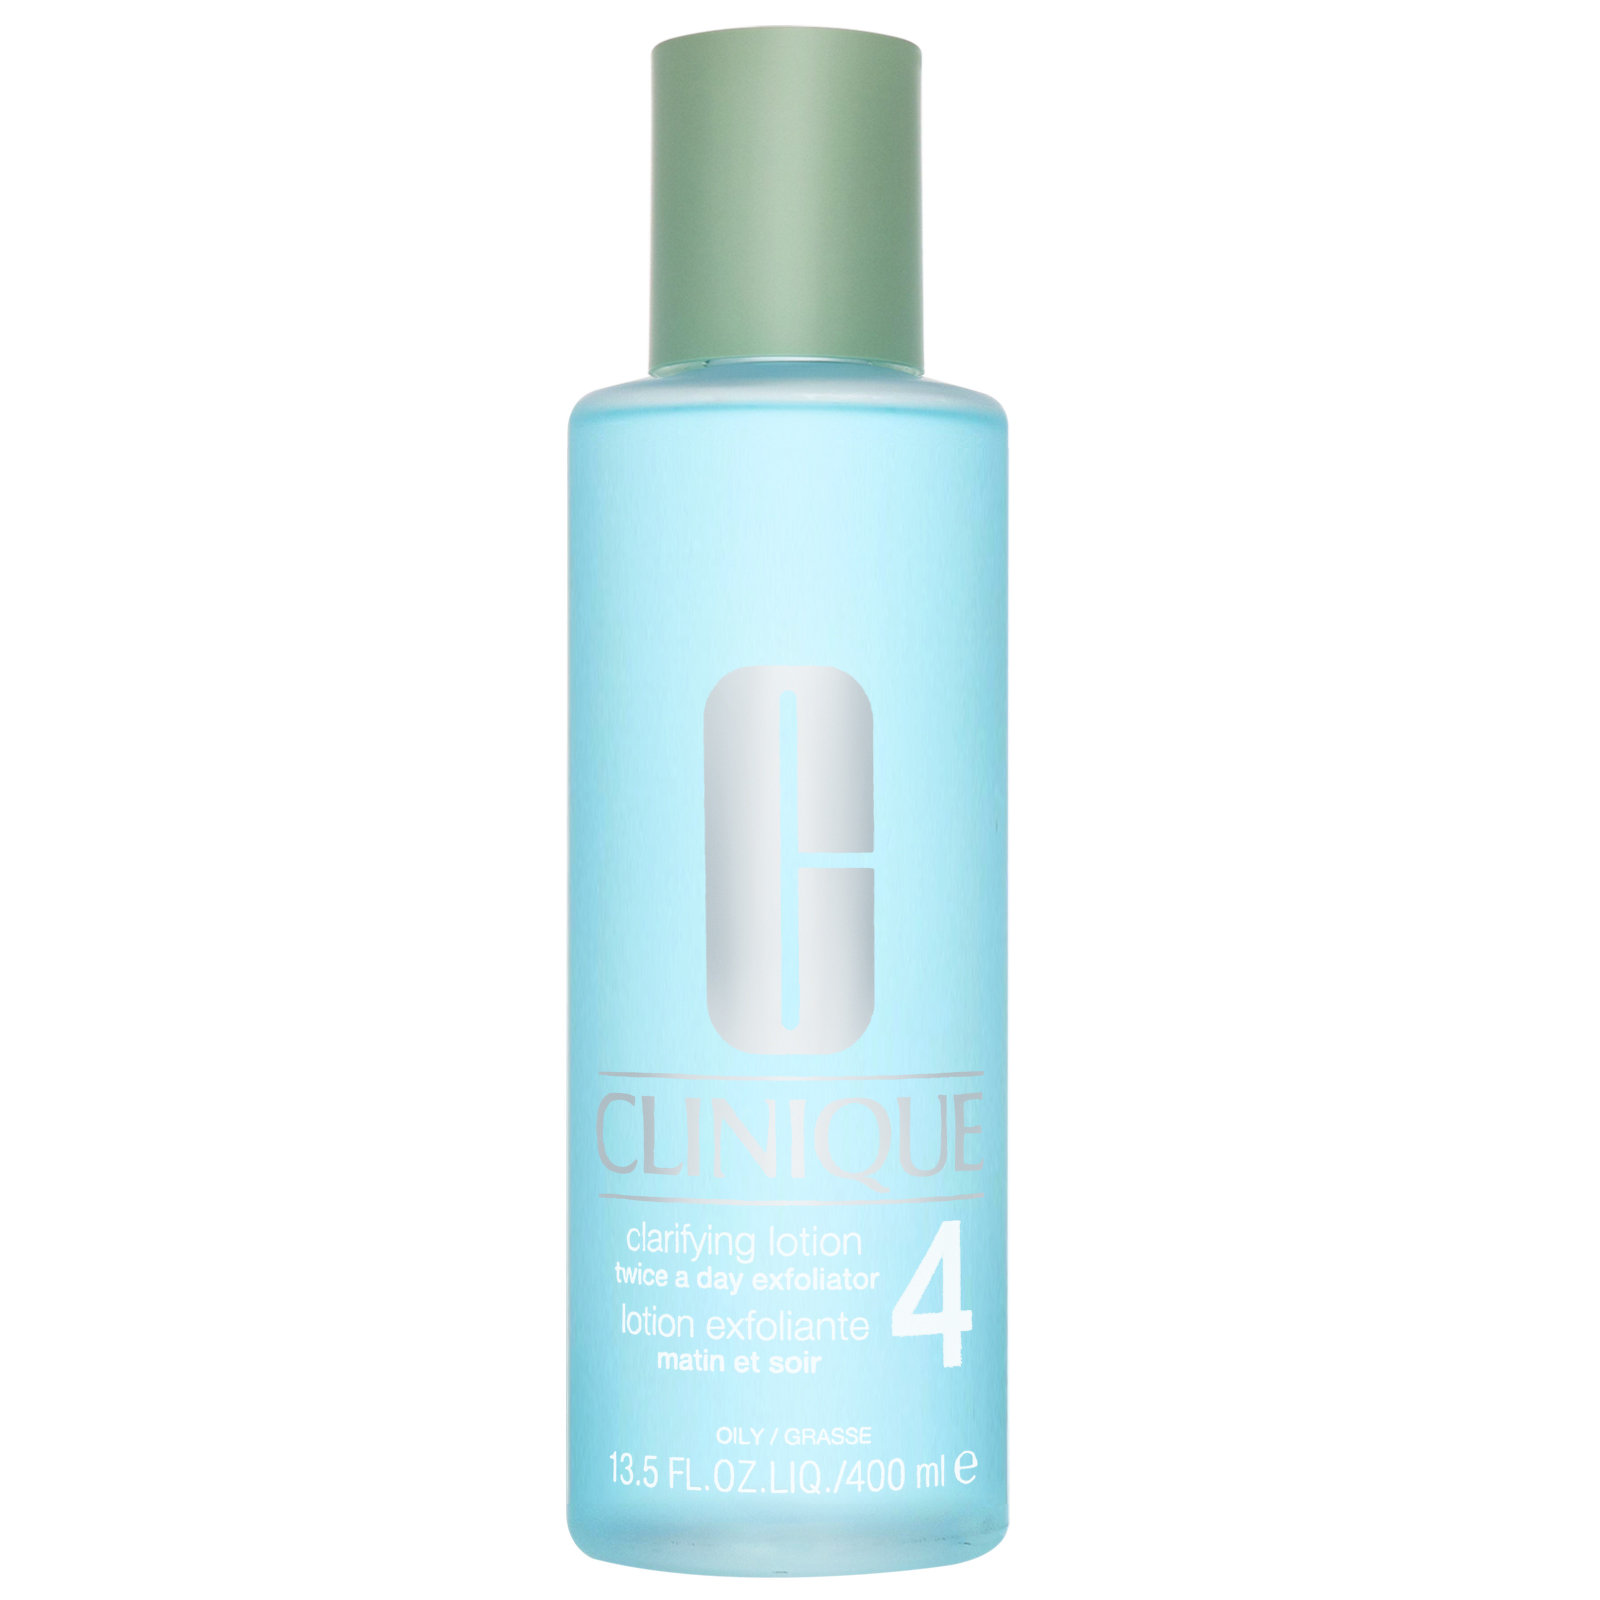 Clinique Cleansers & Makeup Removers Clarifying Lotion Twice A Day Exfoliator 4 for Oily Skin 400ml / 13.5 fl.oz.